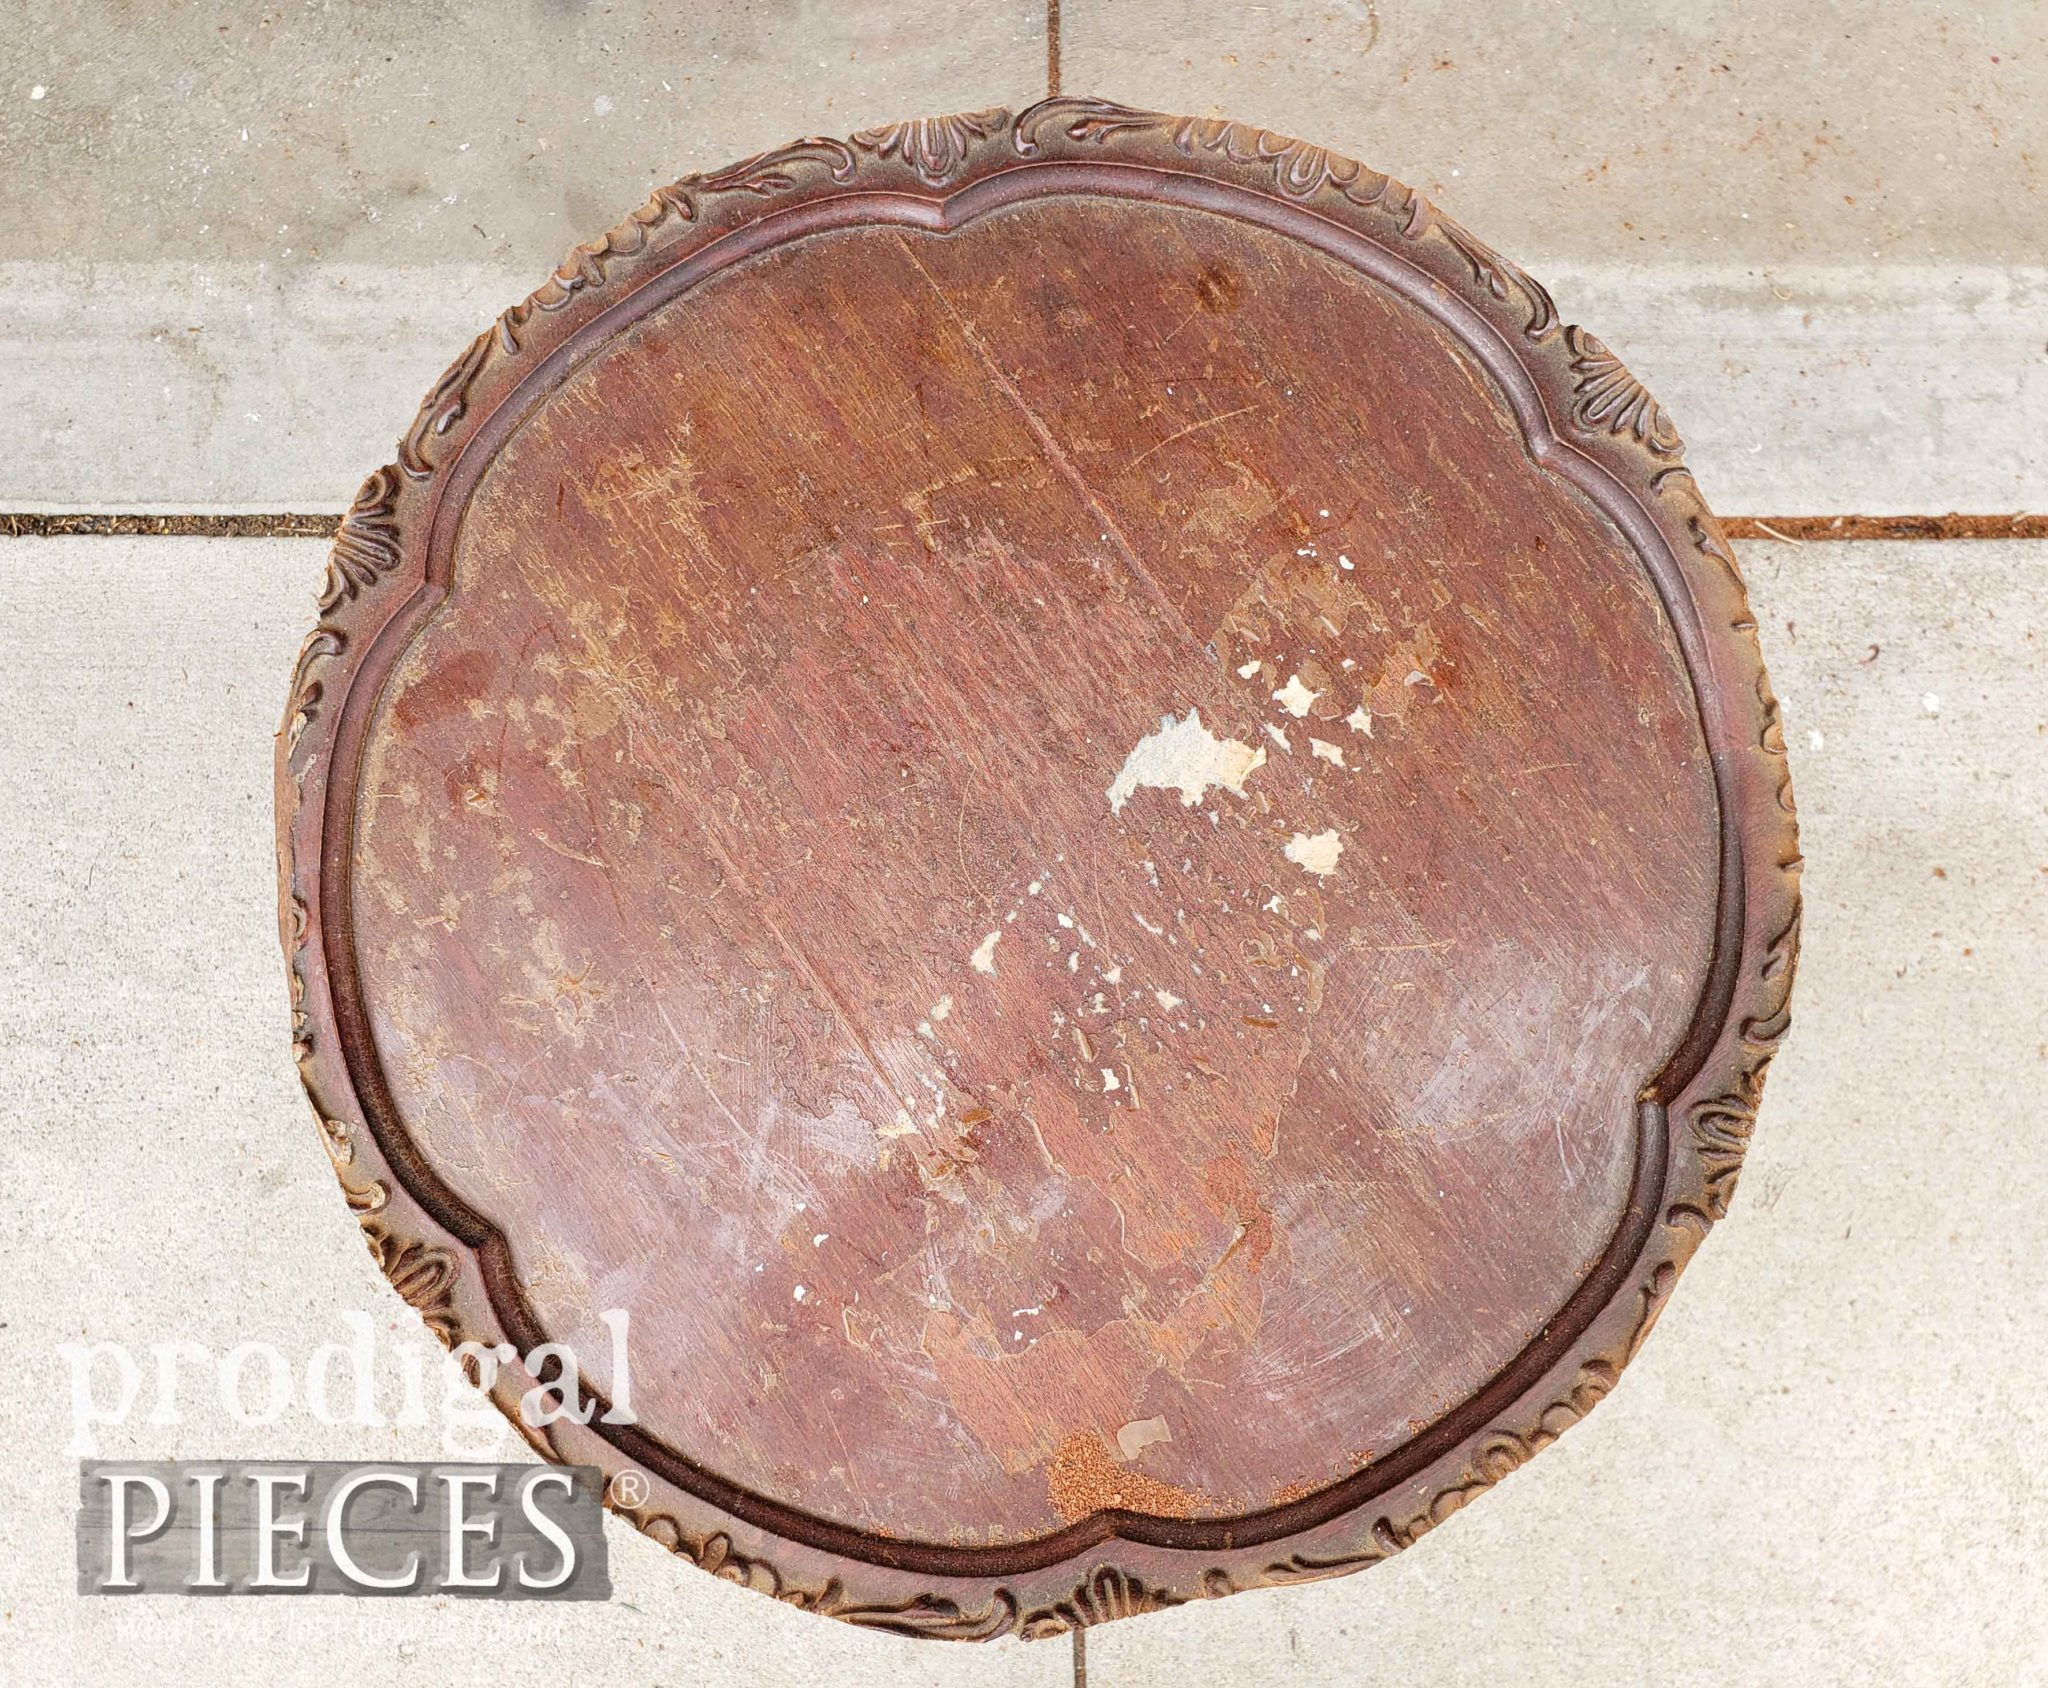 Cut Antique Pie Crust Table Top for Repair by Larissa of Prodigal Pieces | prodigalpieces.com